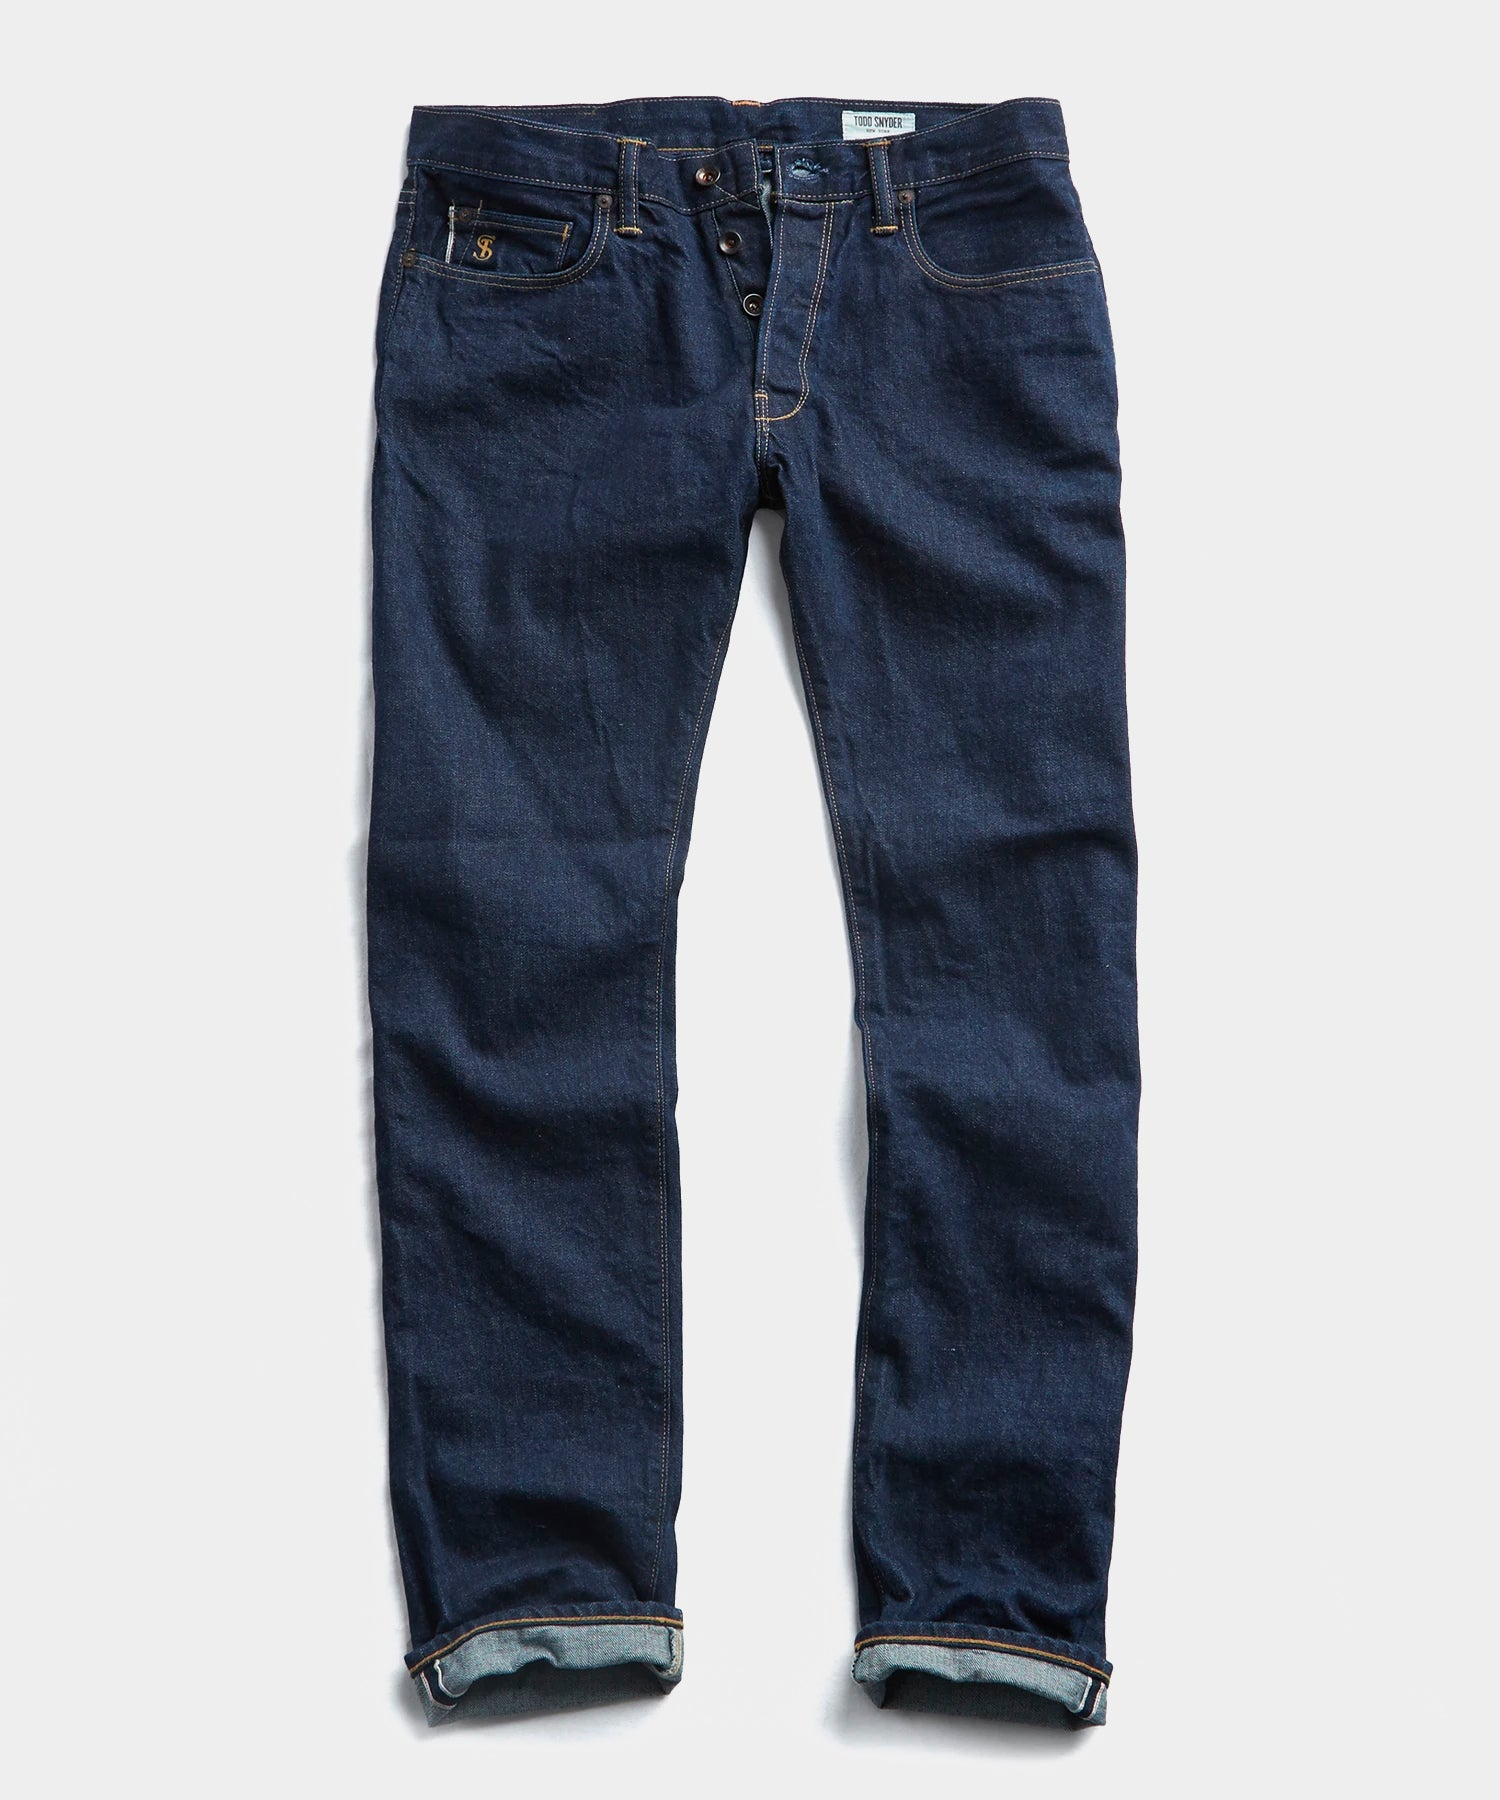 Todd Snyder Japanese Selvedge Denim